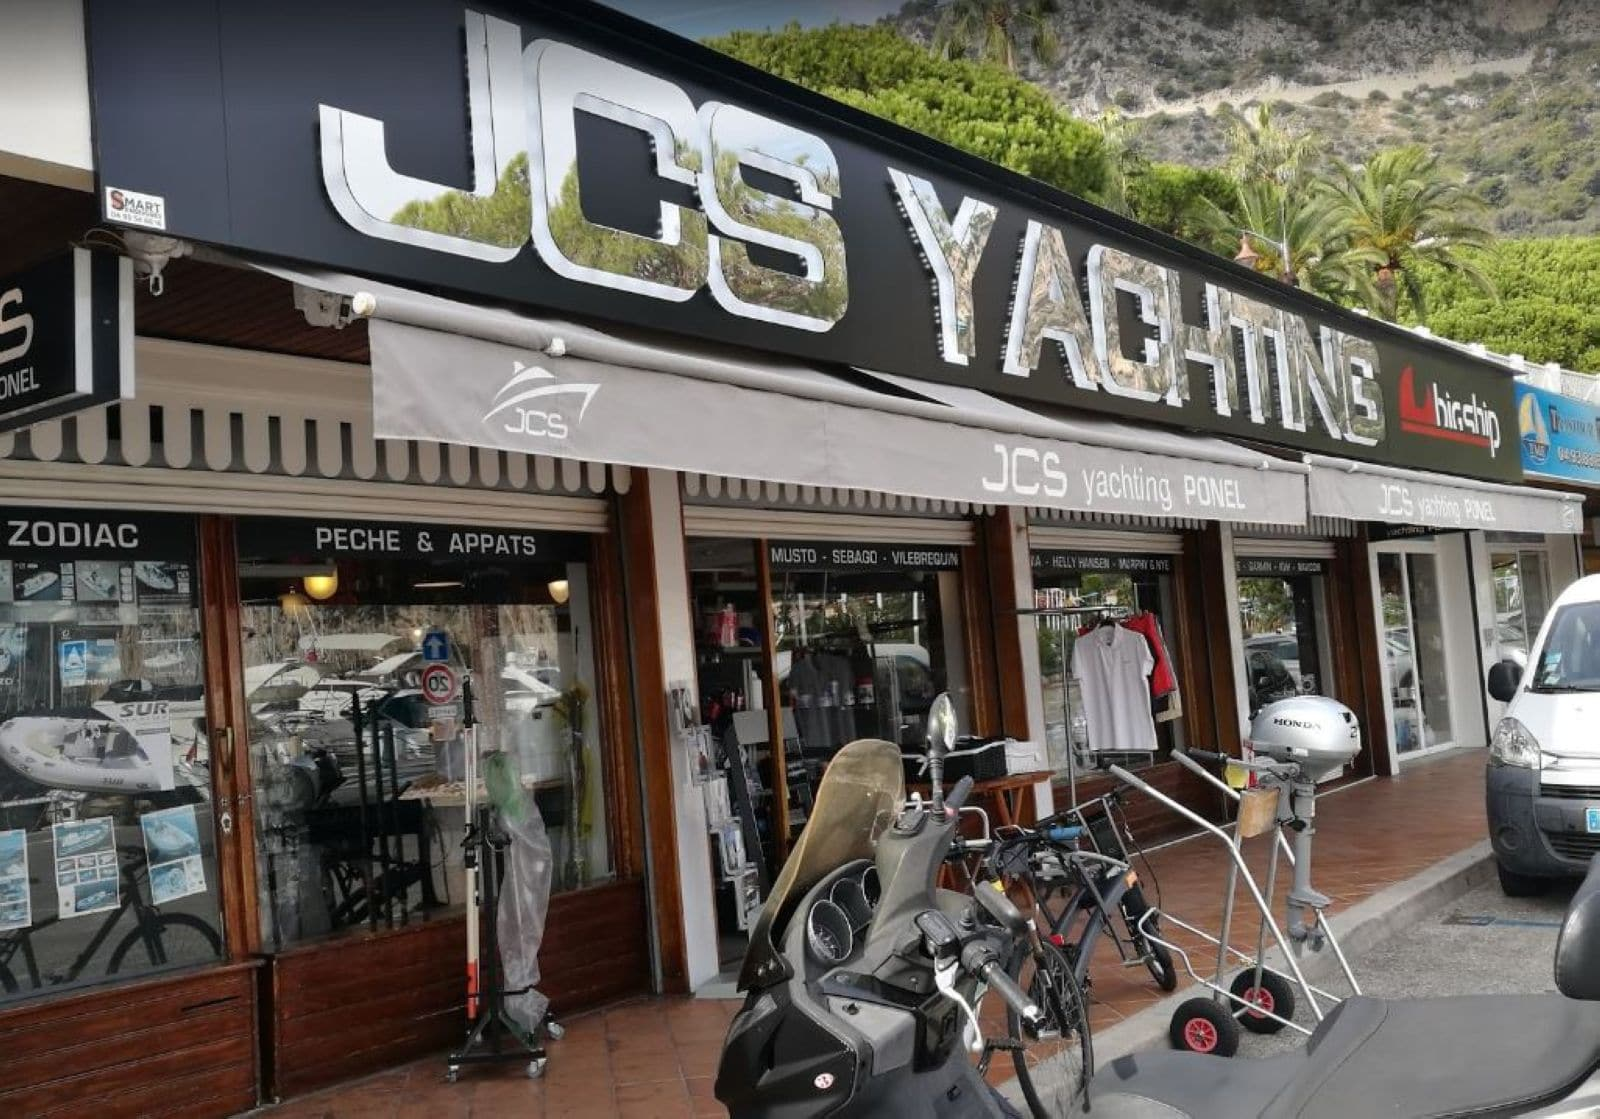 enseigne-metal-yachting-beaulieu-jcs-yachting